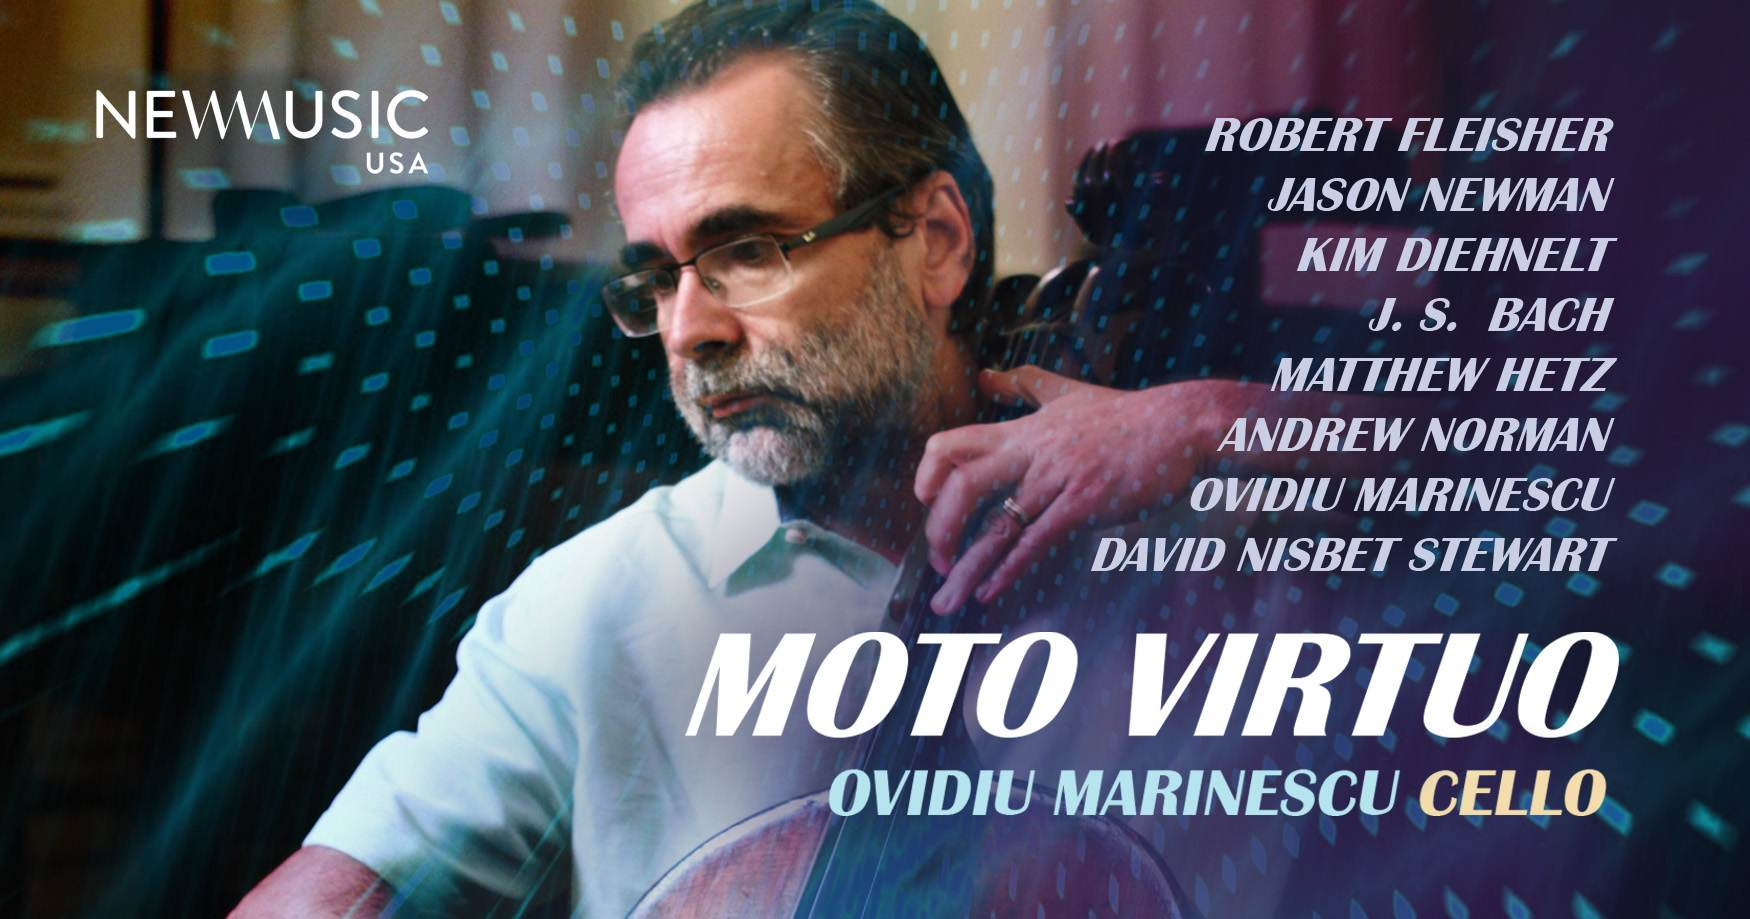 MOTO VIRTUO II event poster